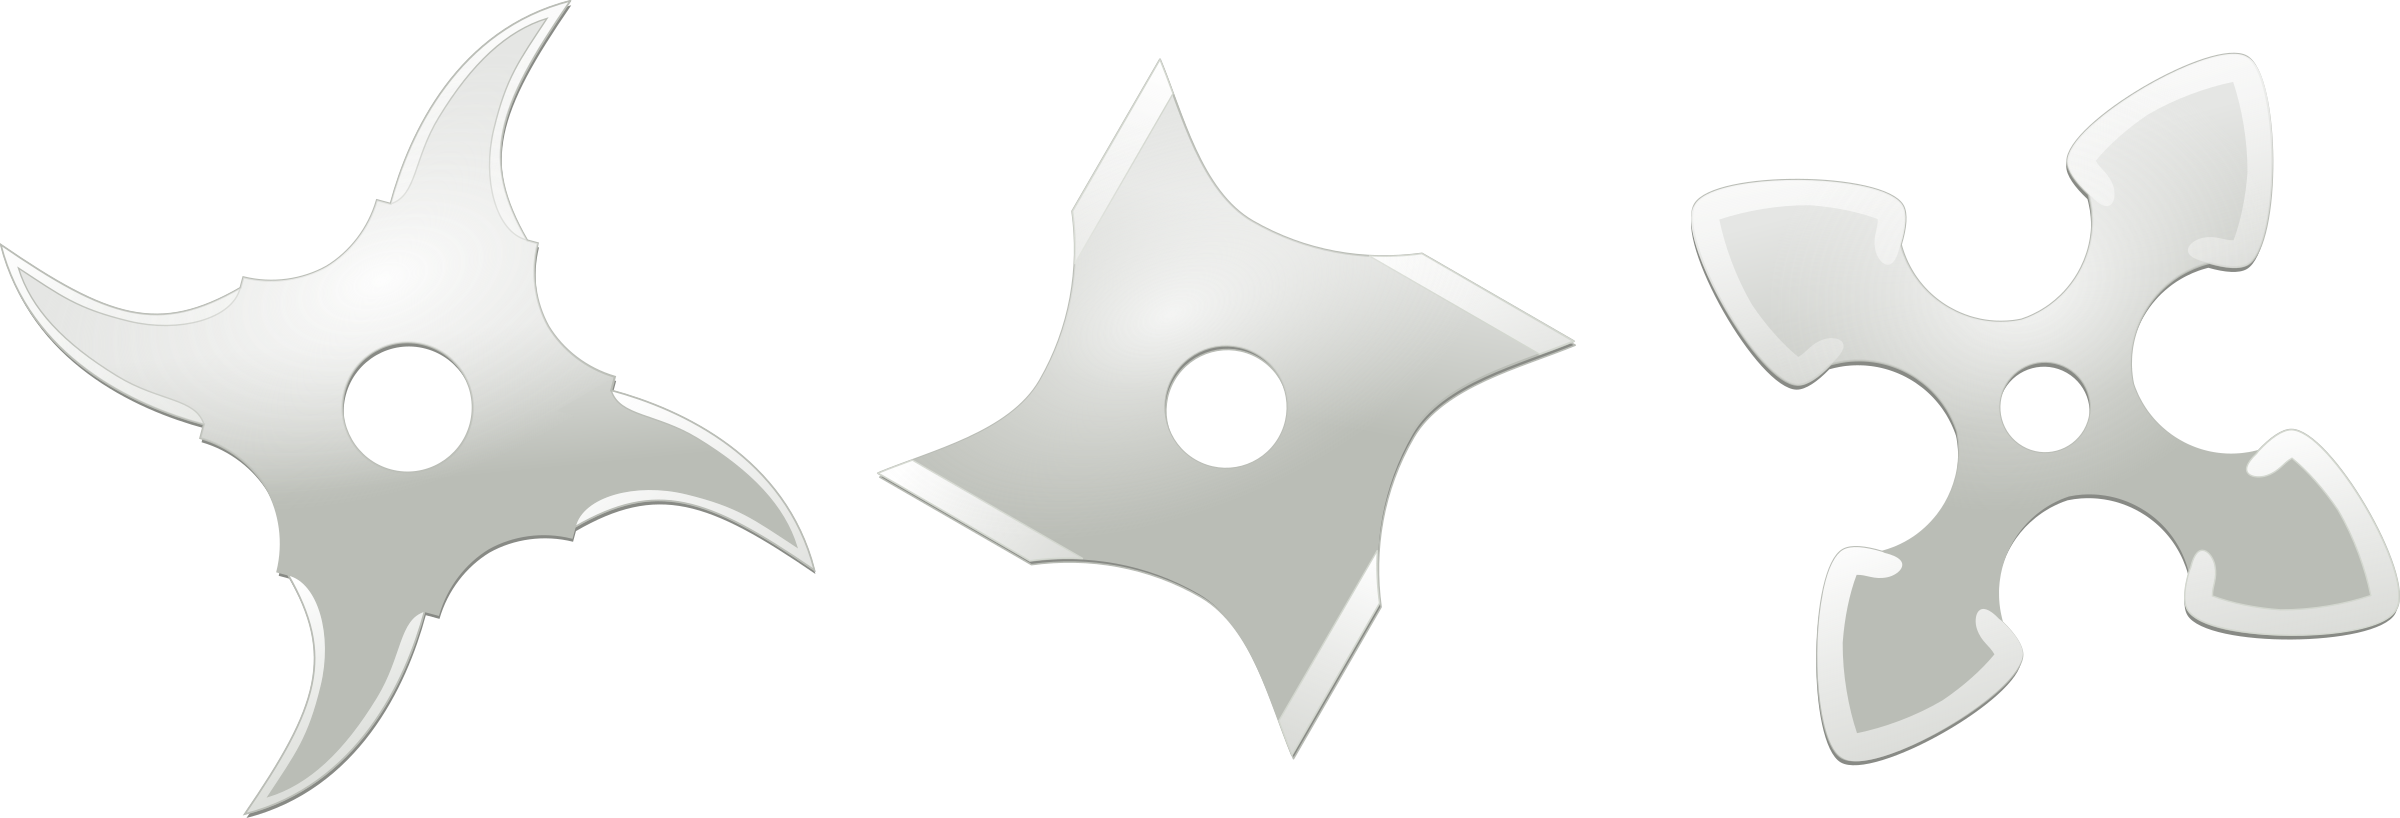 Shurikens by carlitos